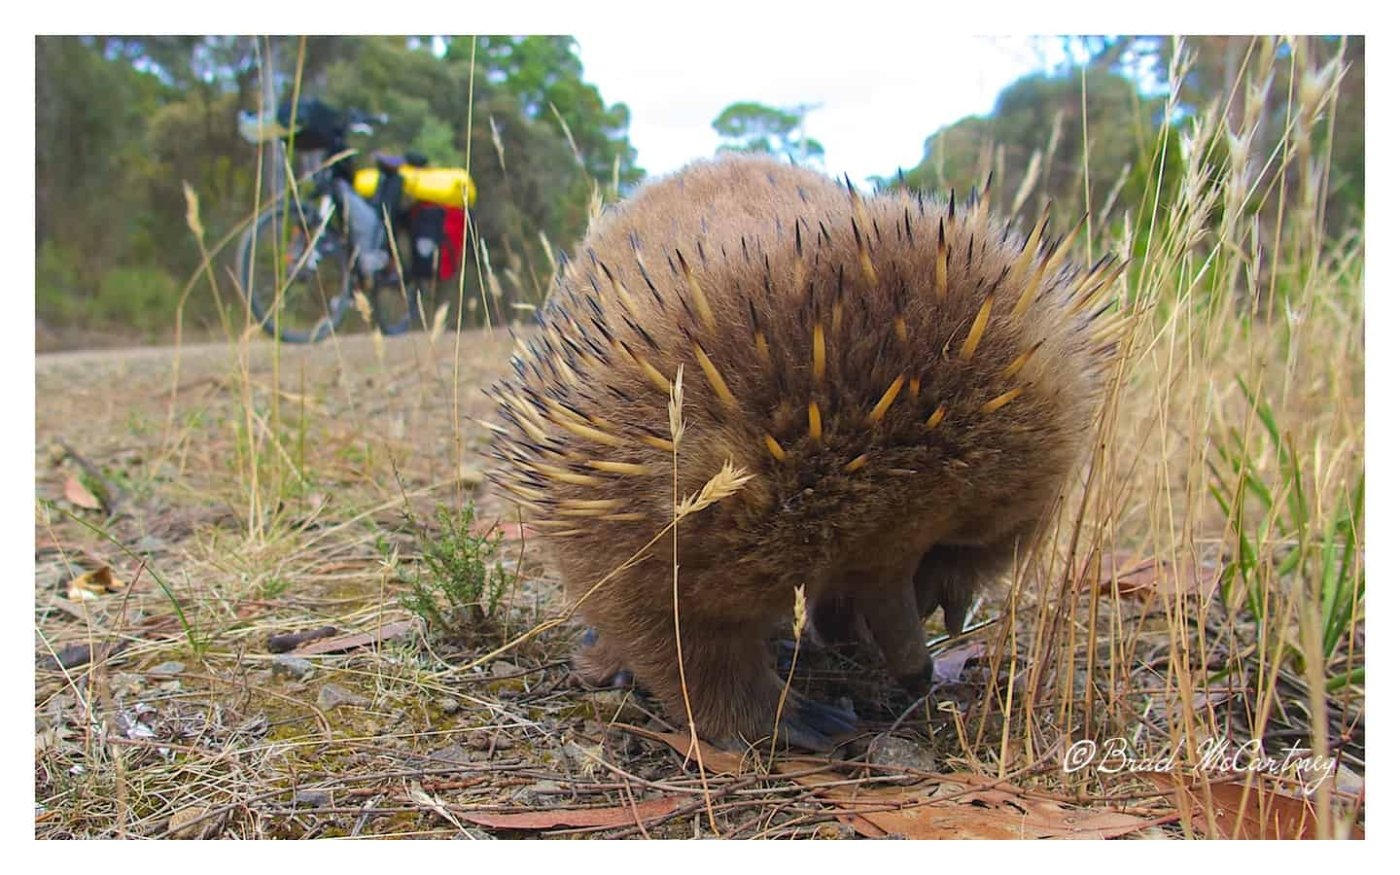 cycling bruny island and seeing an echidna